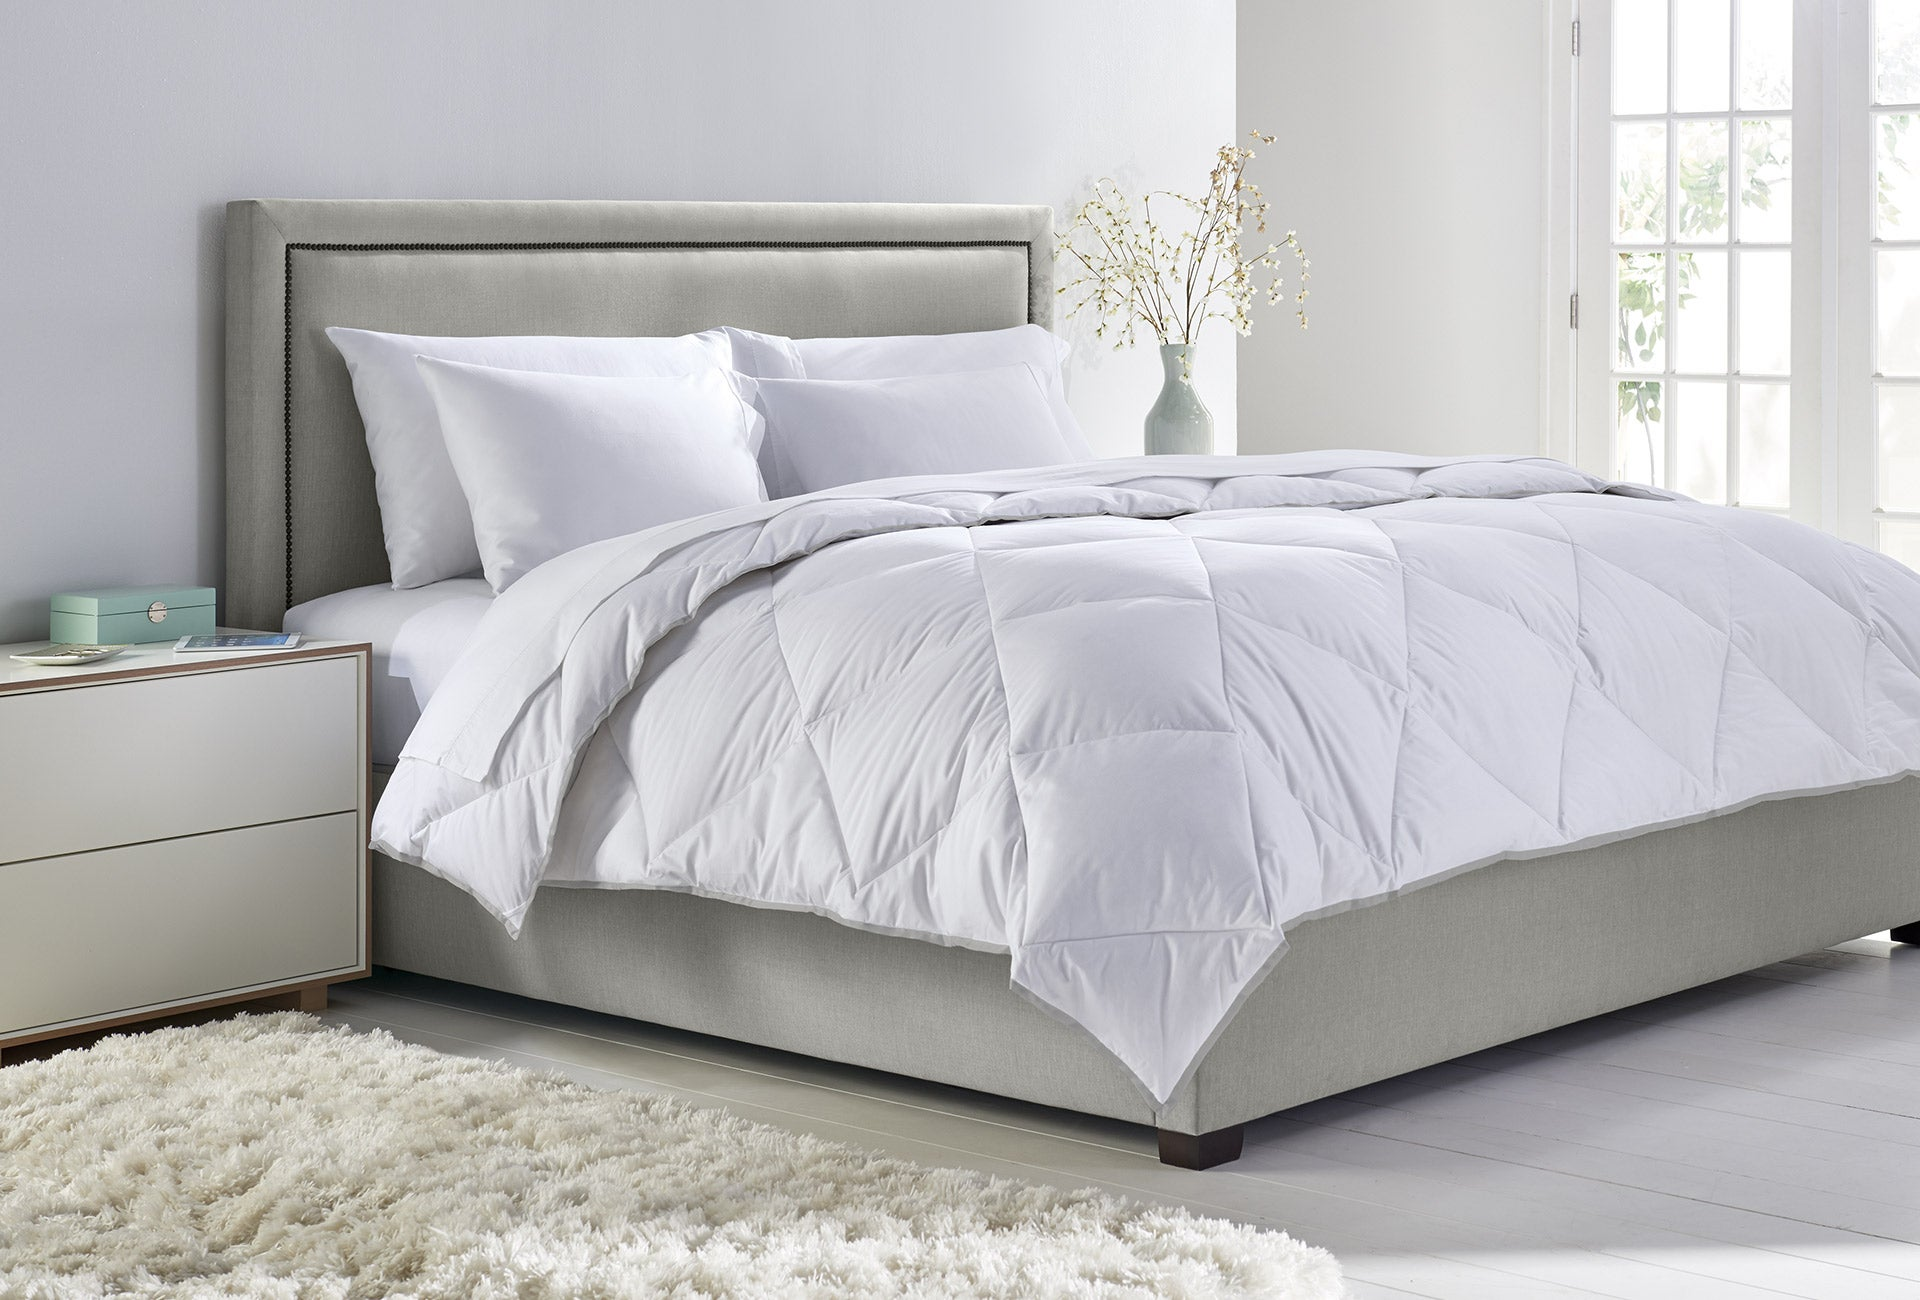 skirts comforter custom number for pin bedroom sleep that makes bed company